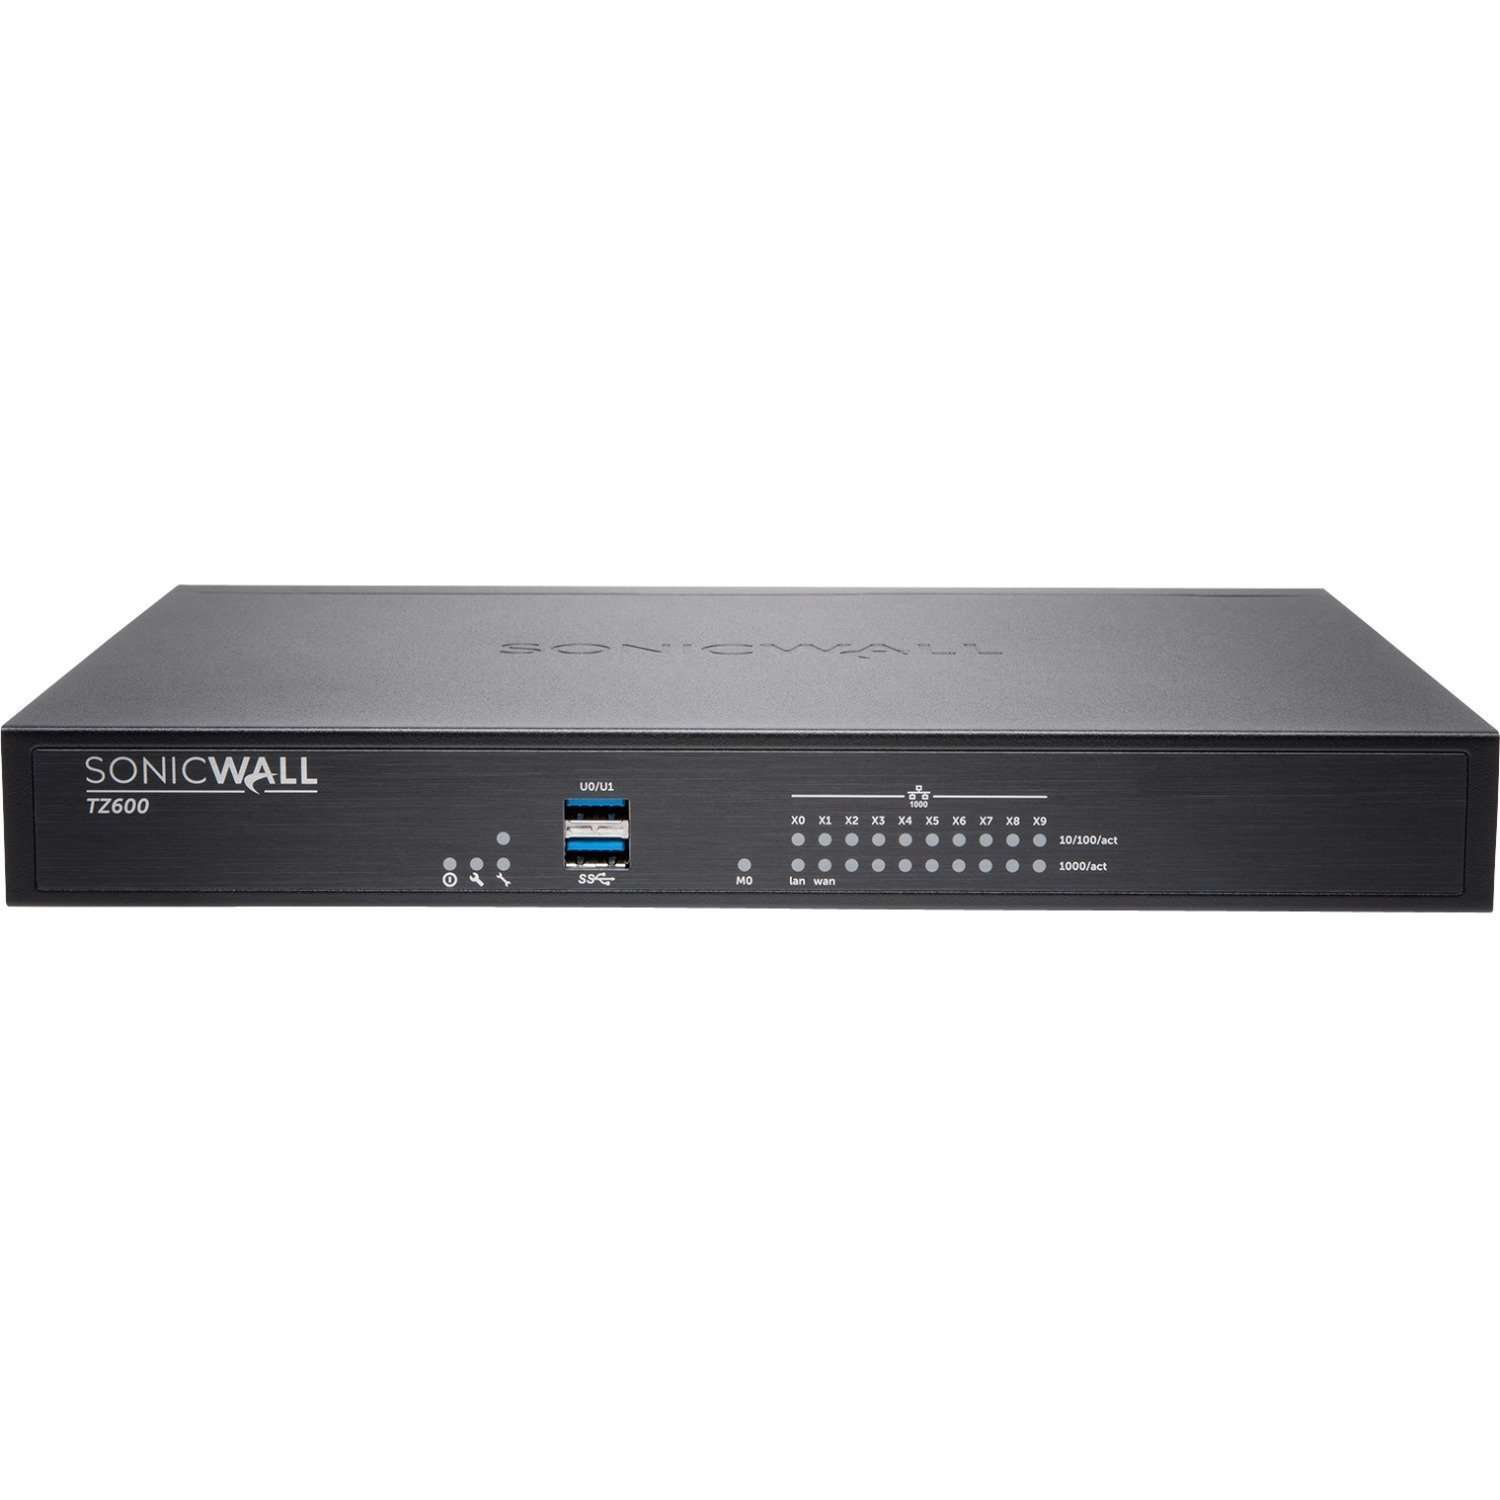 SonicWall TZ600 Network Security-Firewall Appliance